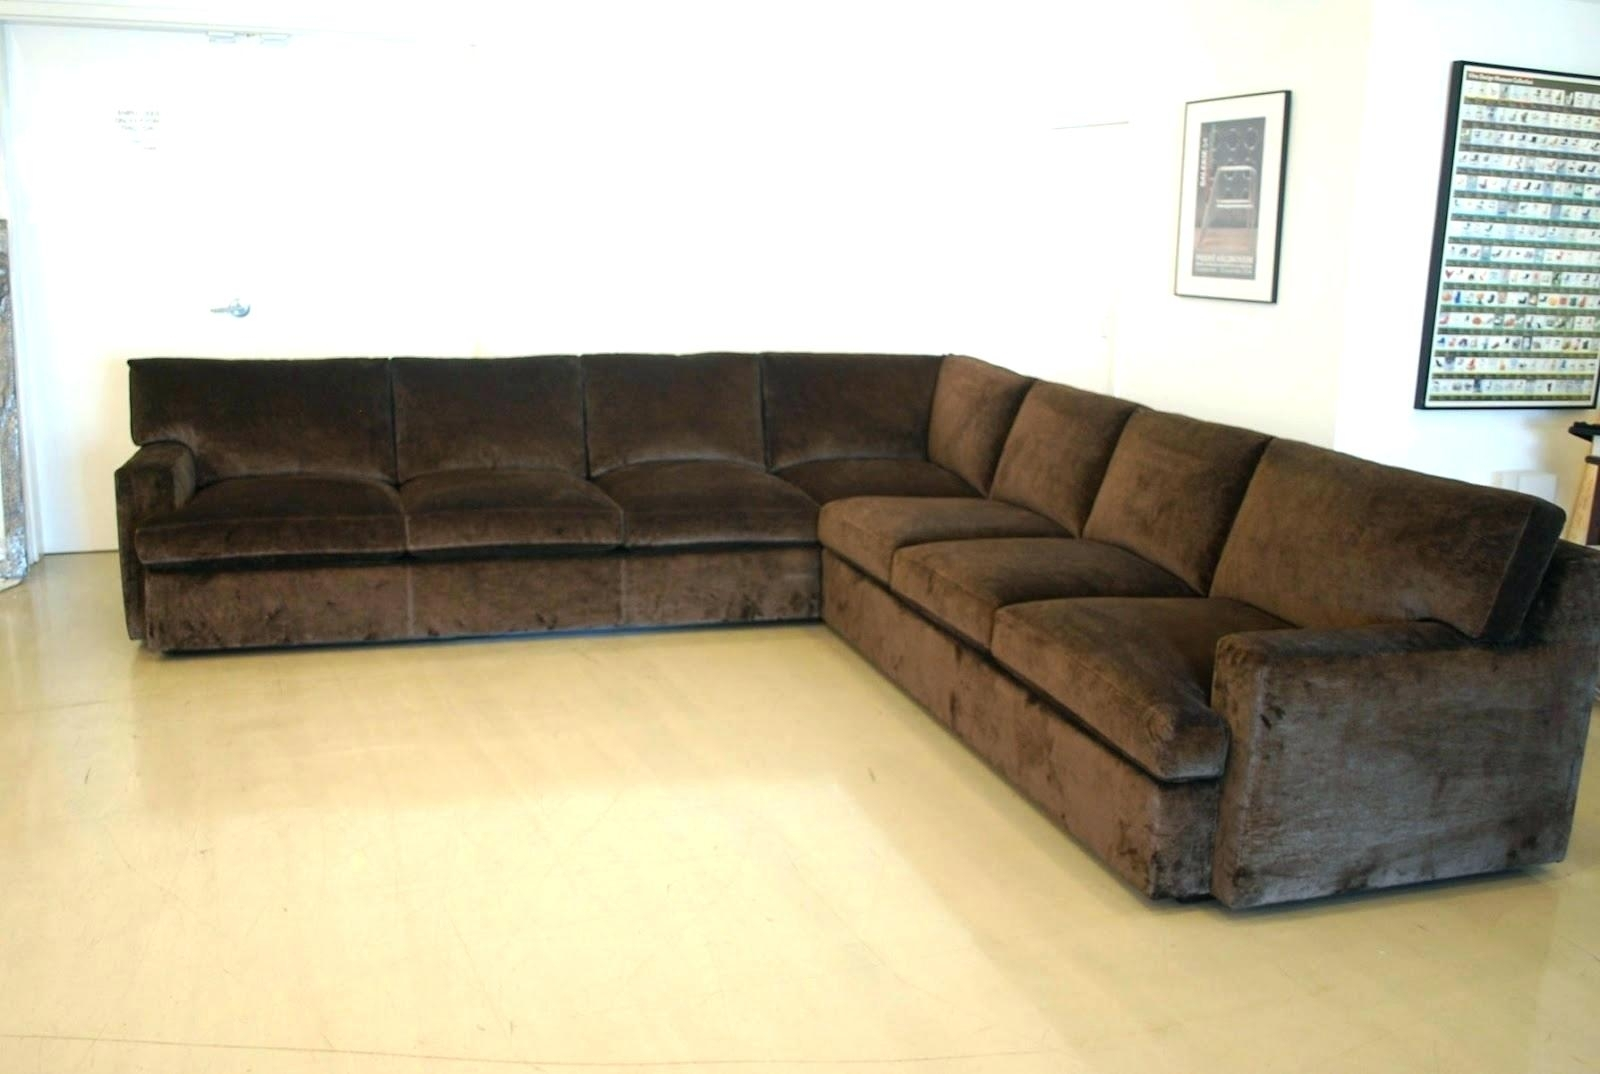 Sofas Online Full Size Of Sectional Sofaonline Custom Sofa Build for Sectional Sofas At Bangalore (Image 14 of 15)